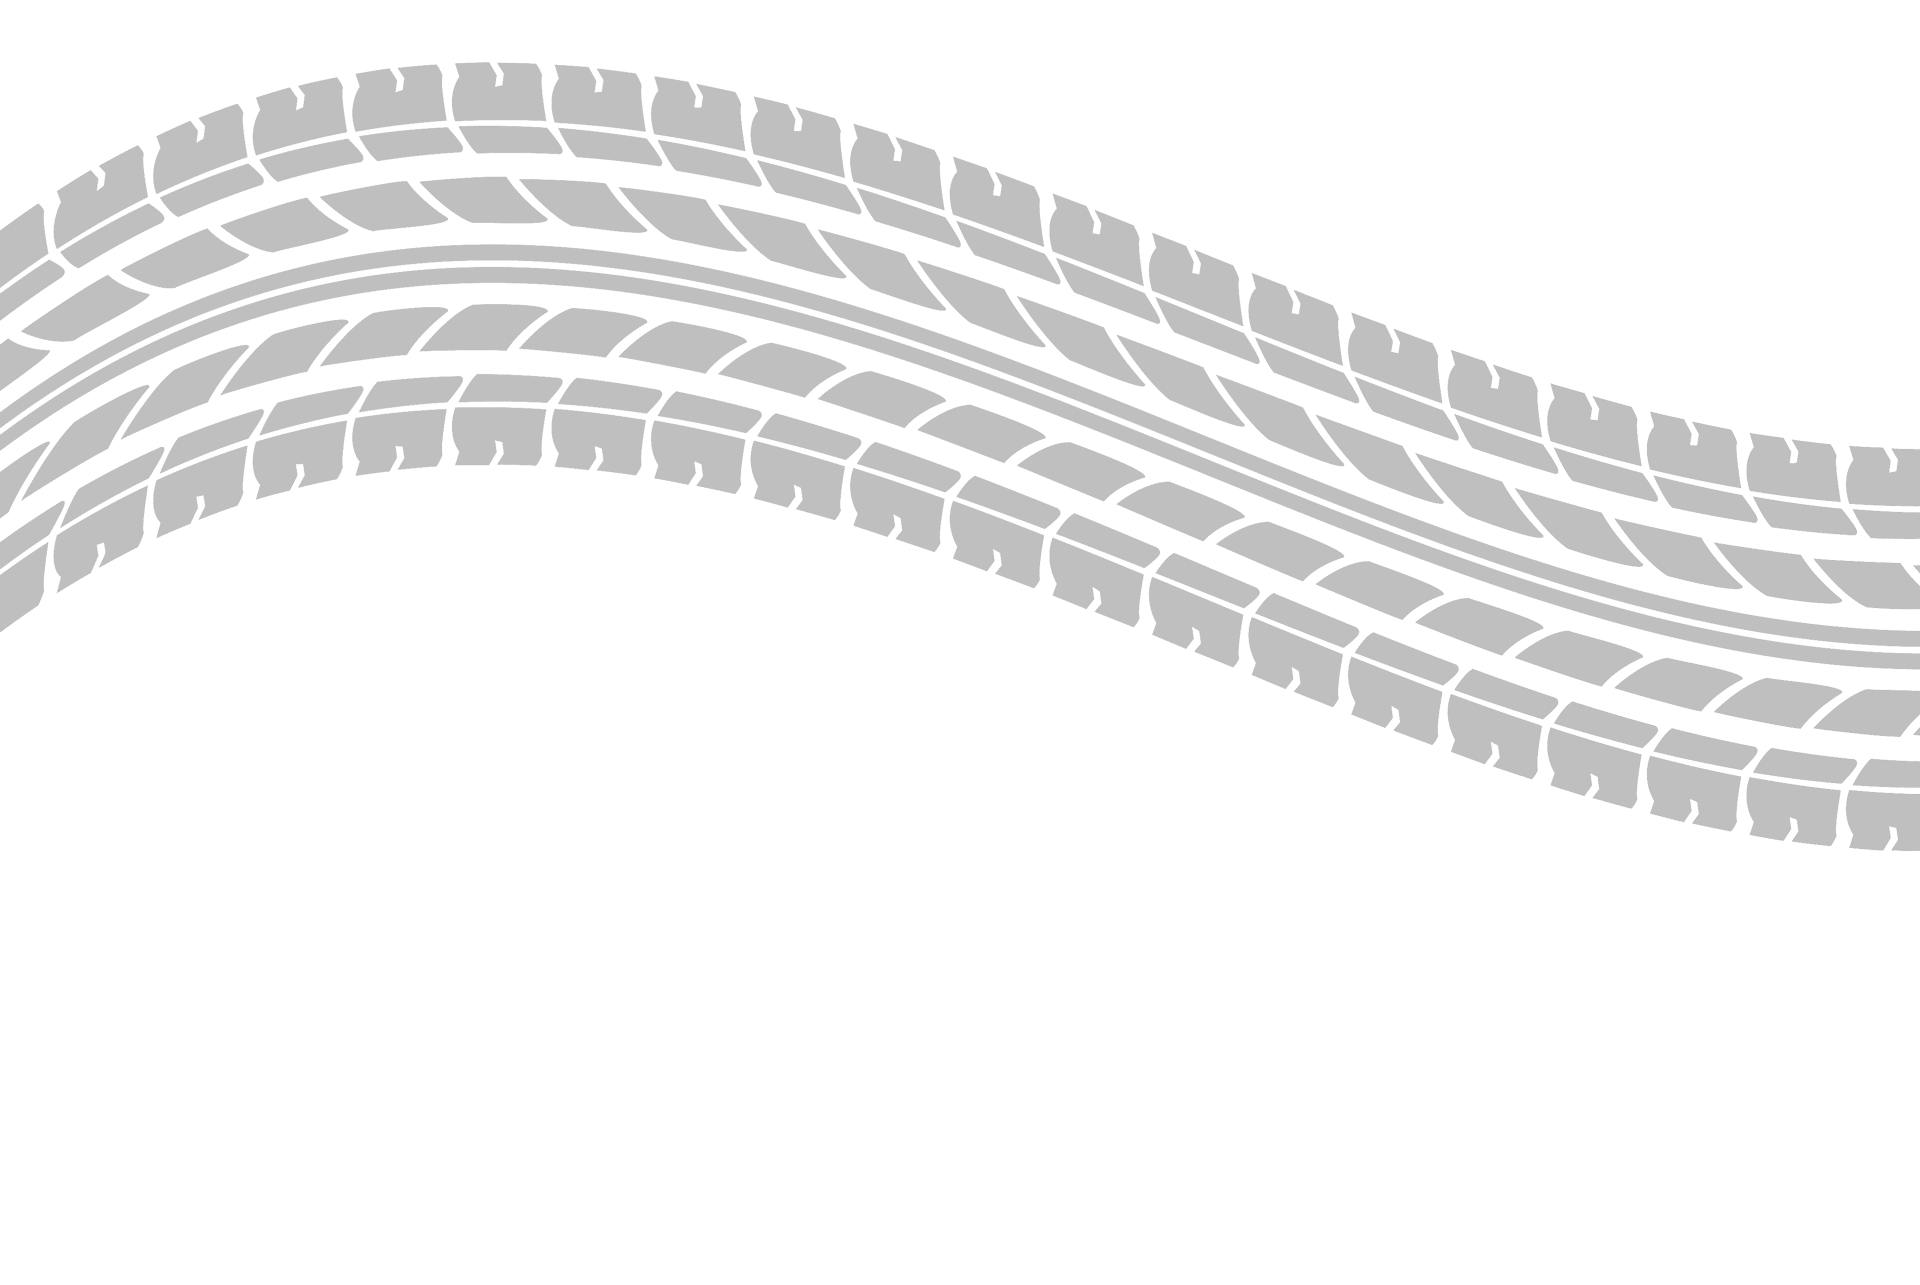 Tire tread png. Mayfields bodyshop and collision